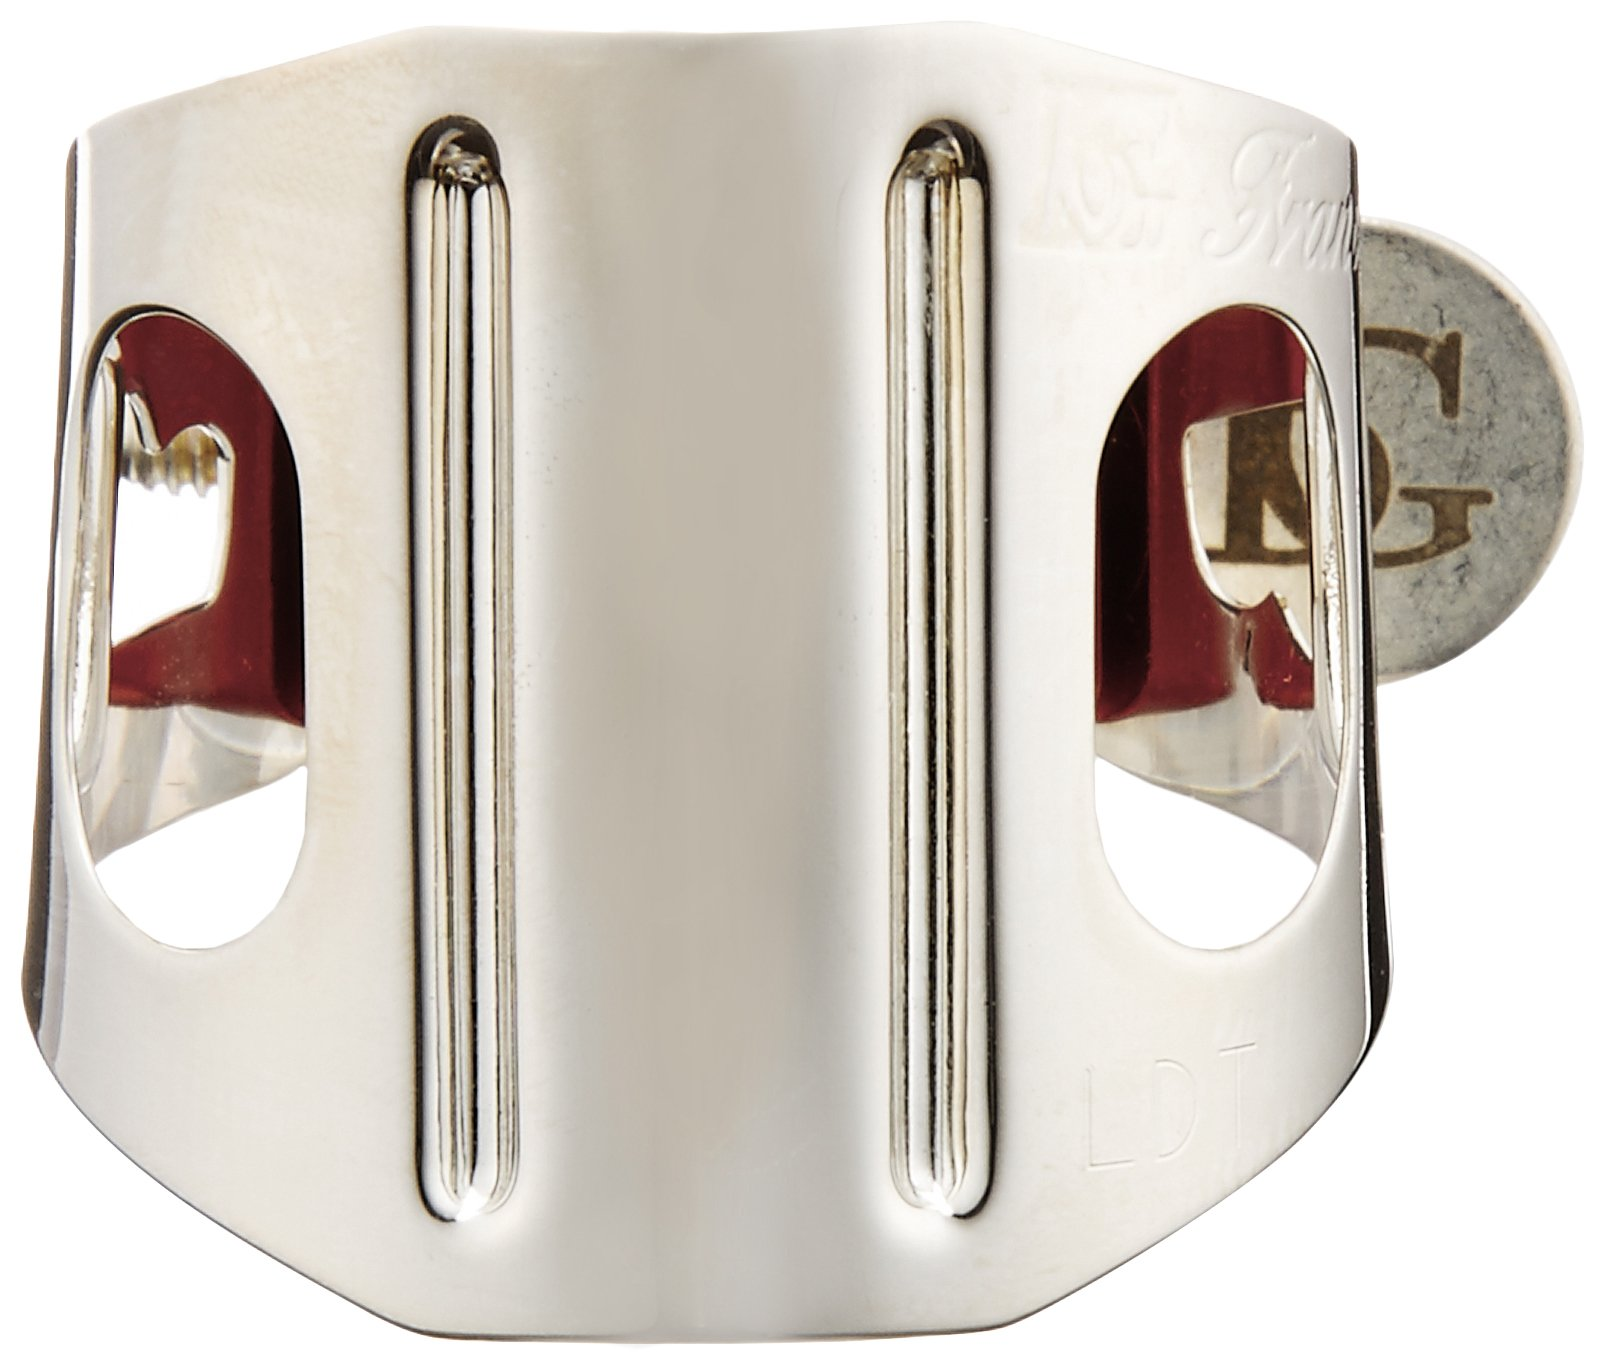 BG Duo Tenor Sax Ligature LDT Silver-Plated